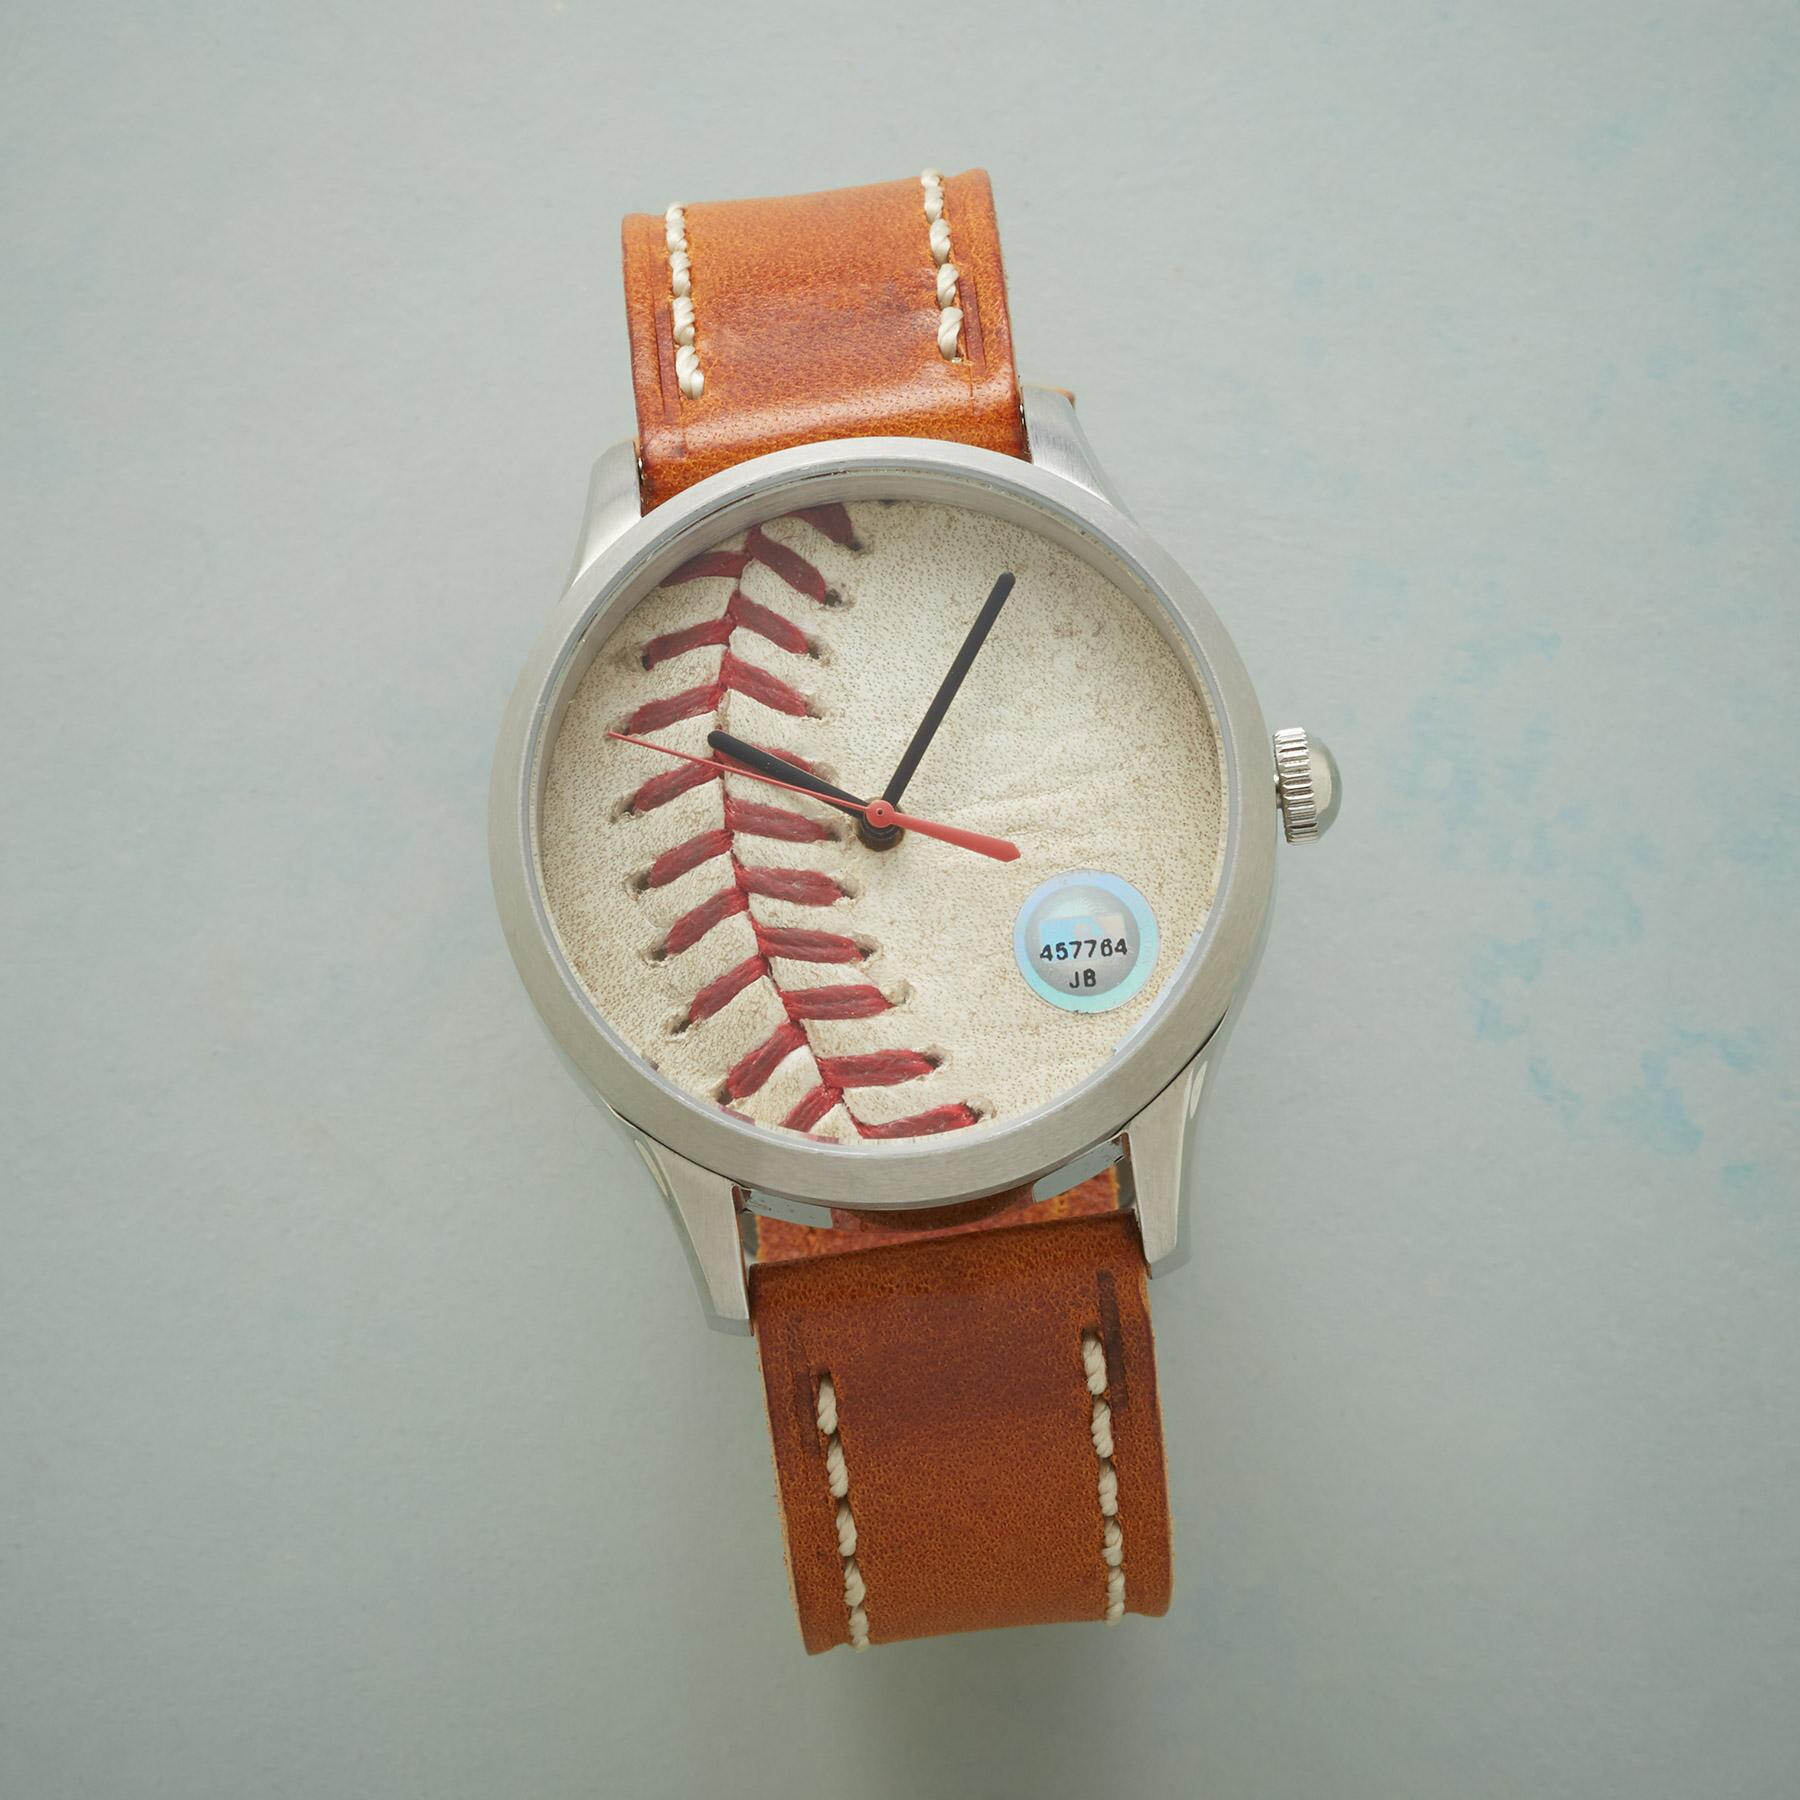 MAJOR LEAGUE WATCH: View 1